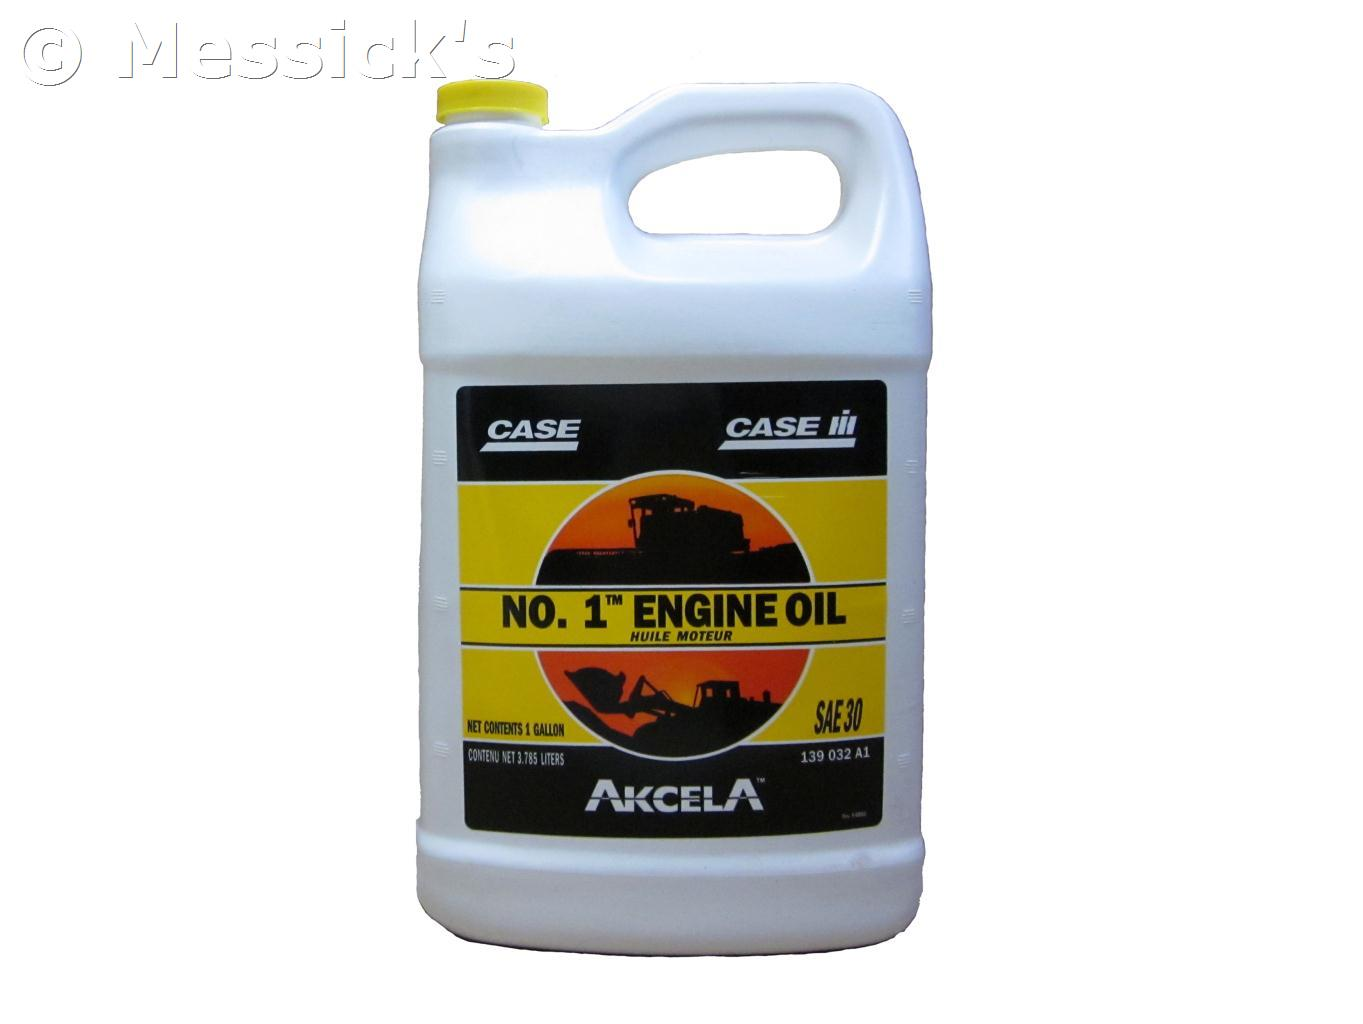 case case sae 30 engine oil 1 gal part 139032a1